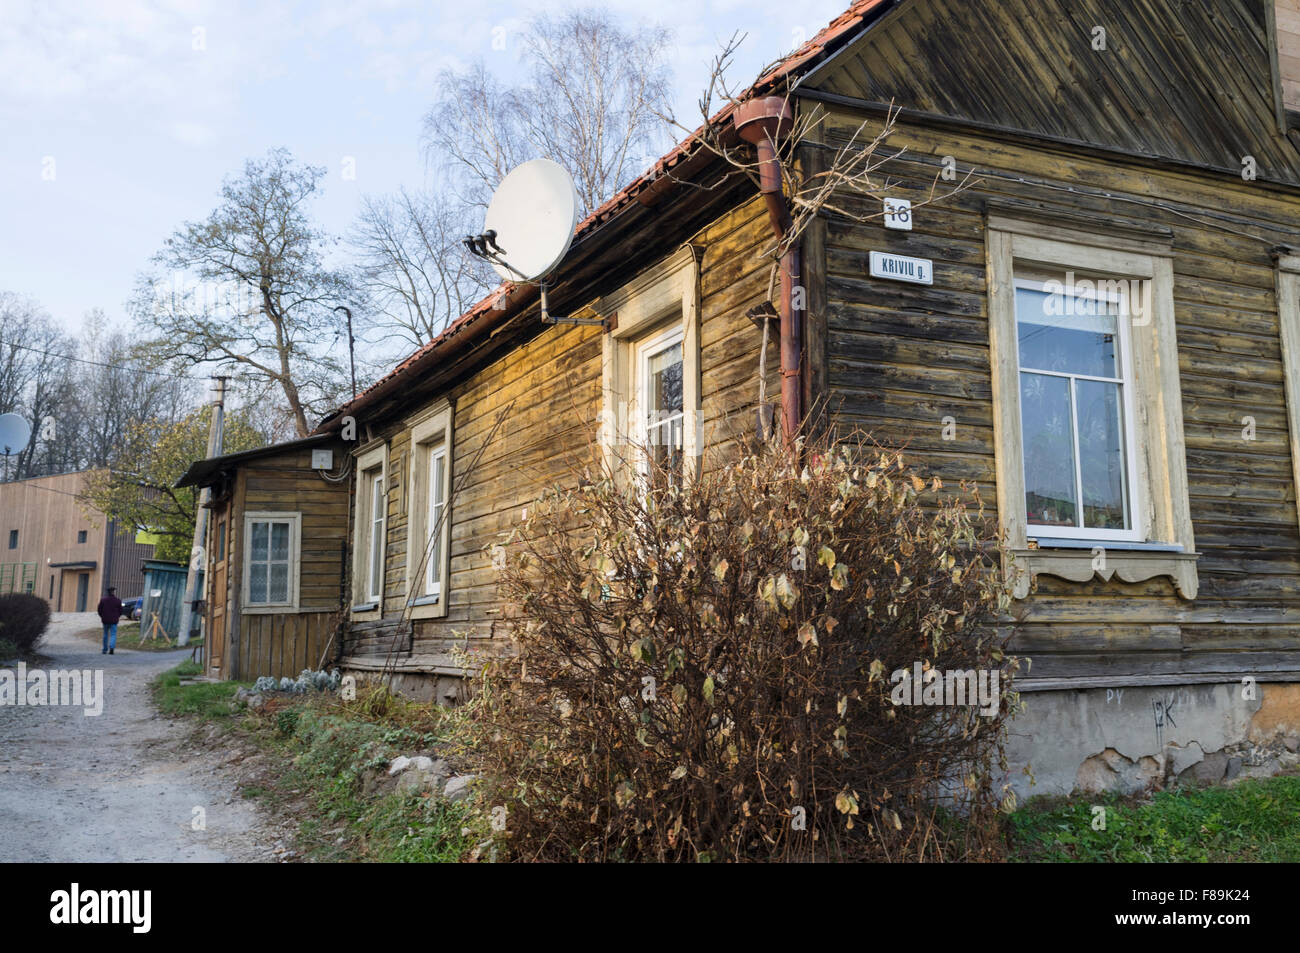 Wooden cabin at the self-declared independent republic of Uzupis bohemian district. Vilnius, Lithuania - Stock Image